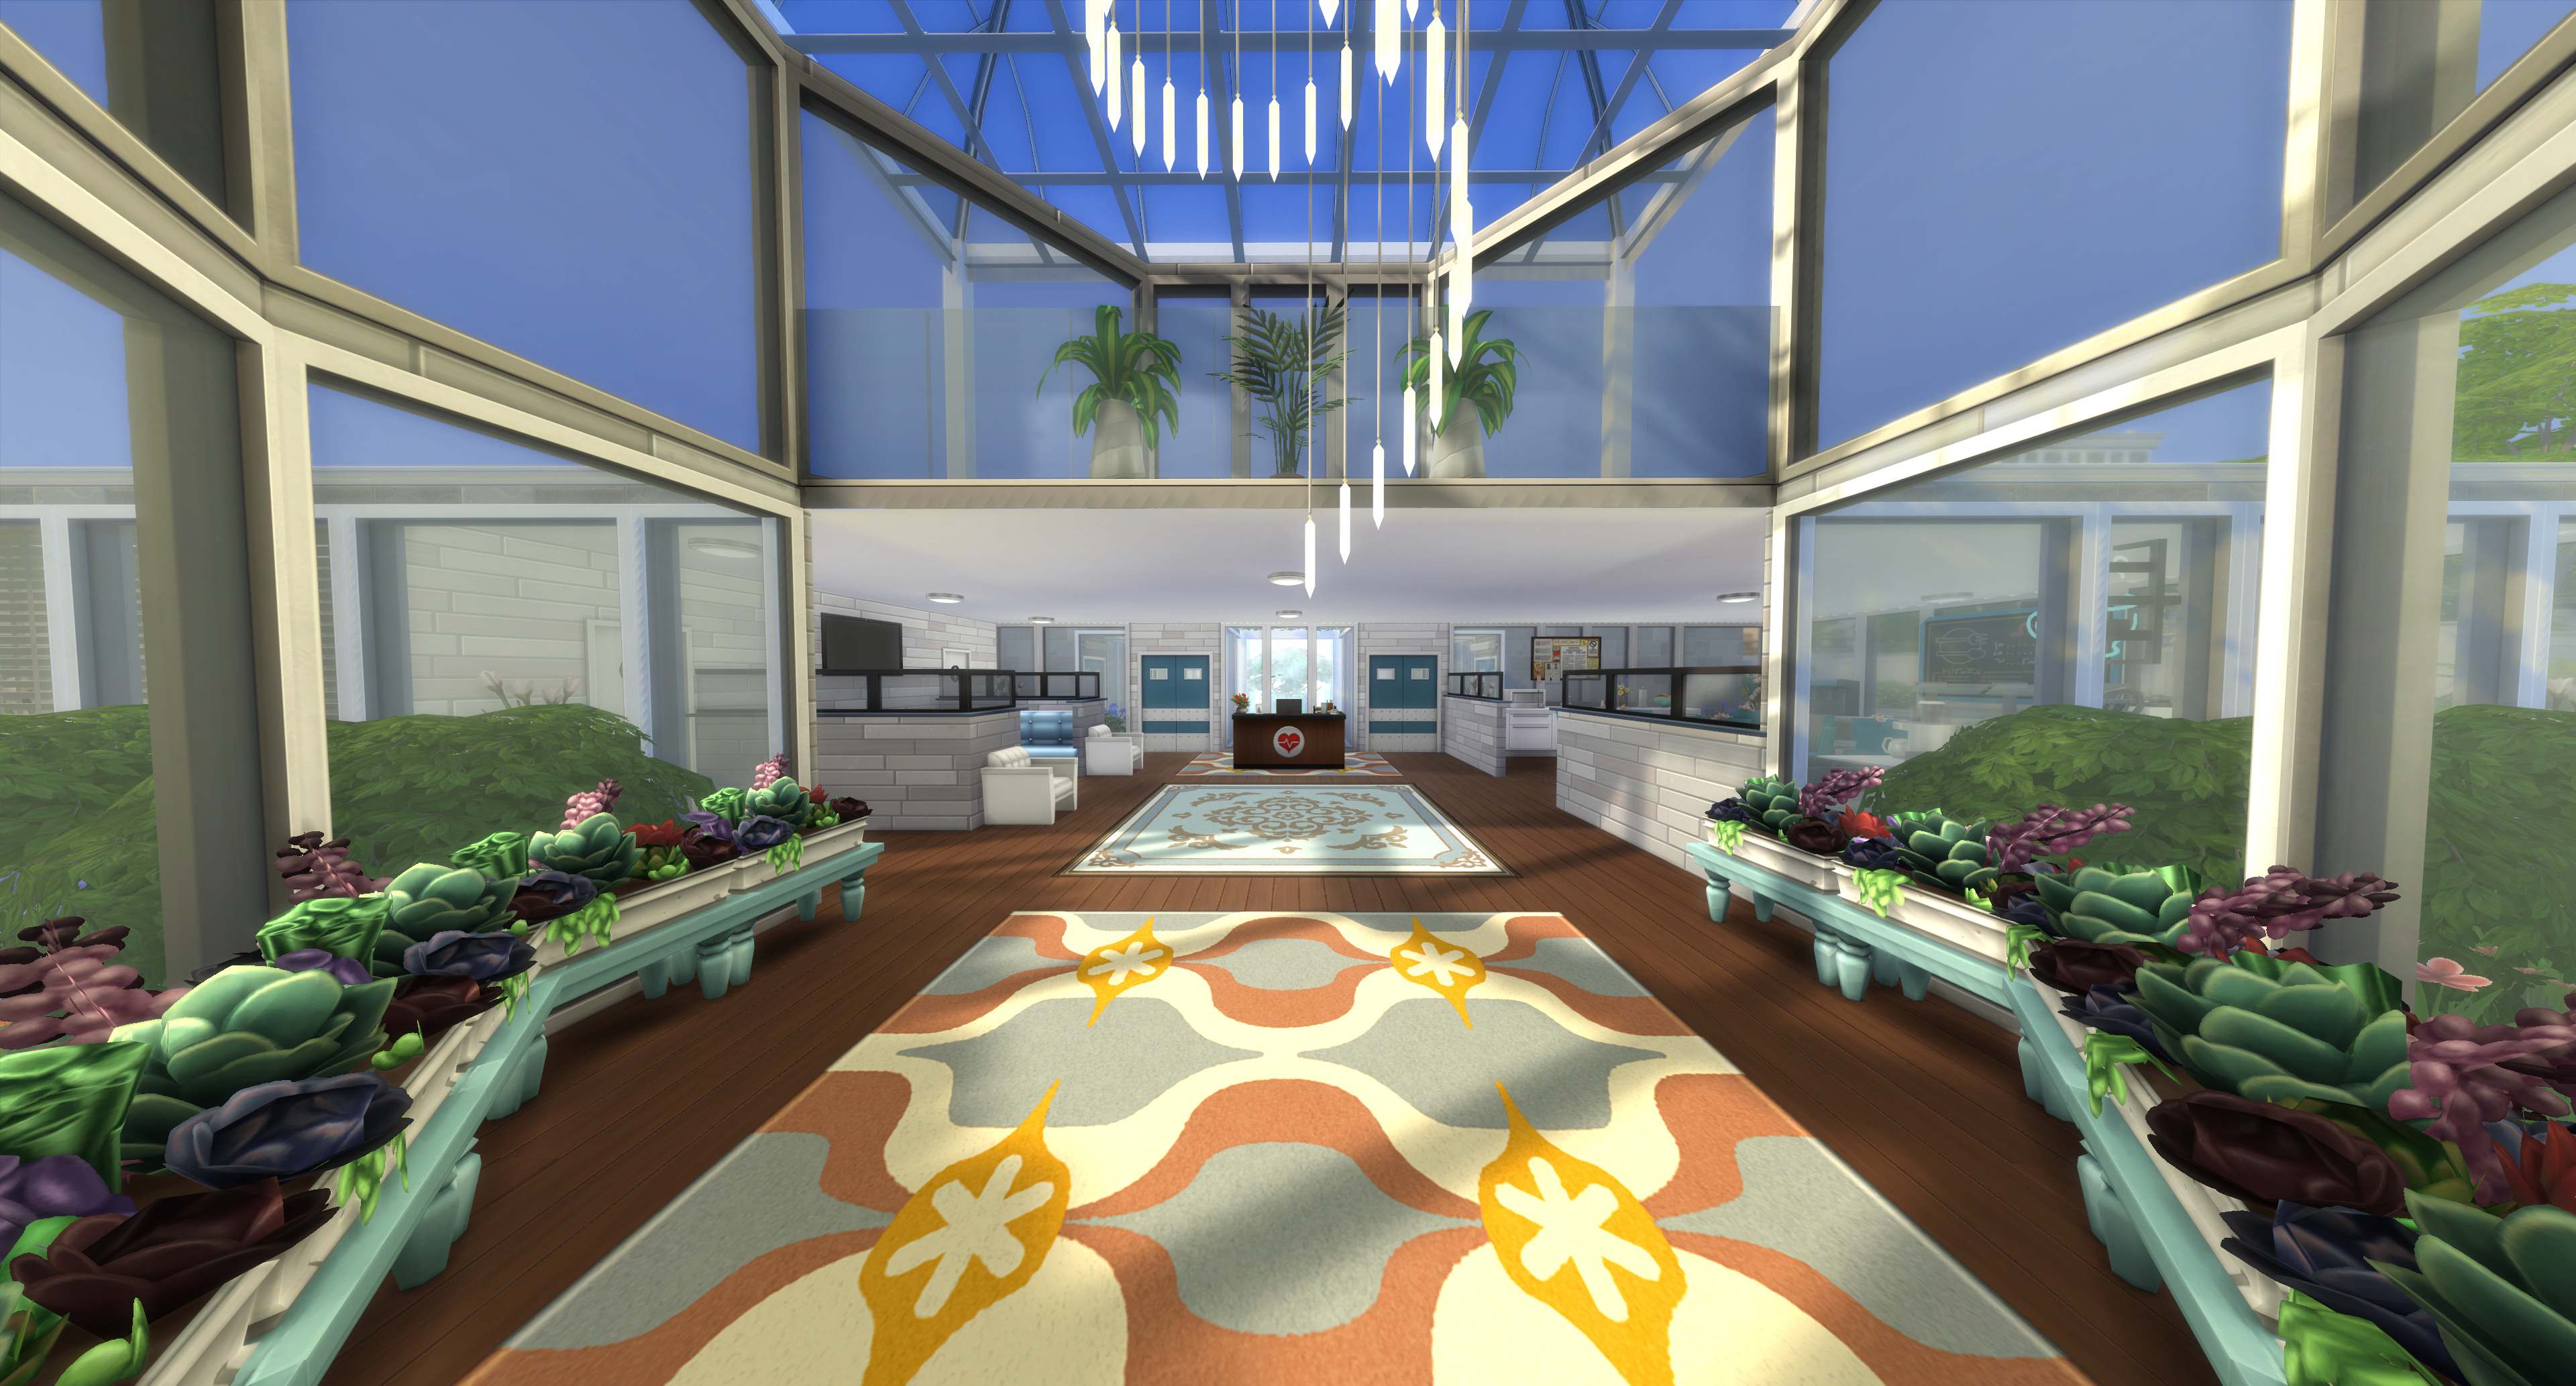 Sims 4 Mod Hospital by chicagonative